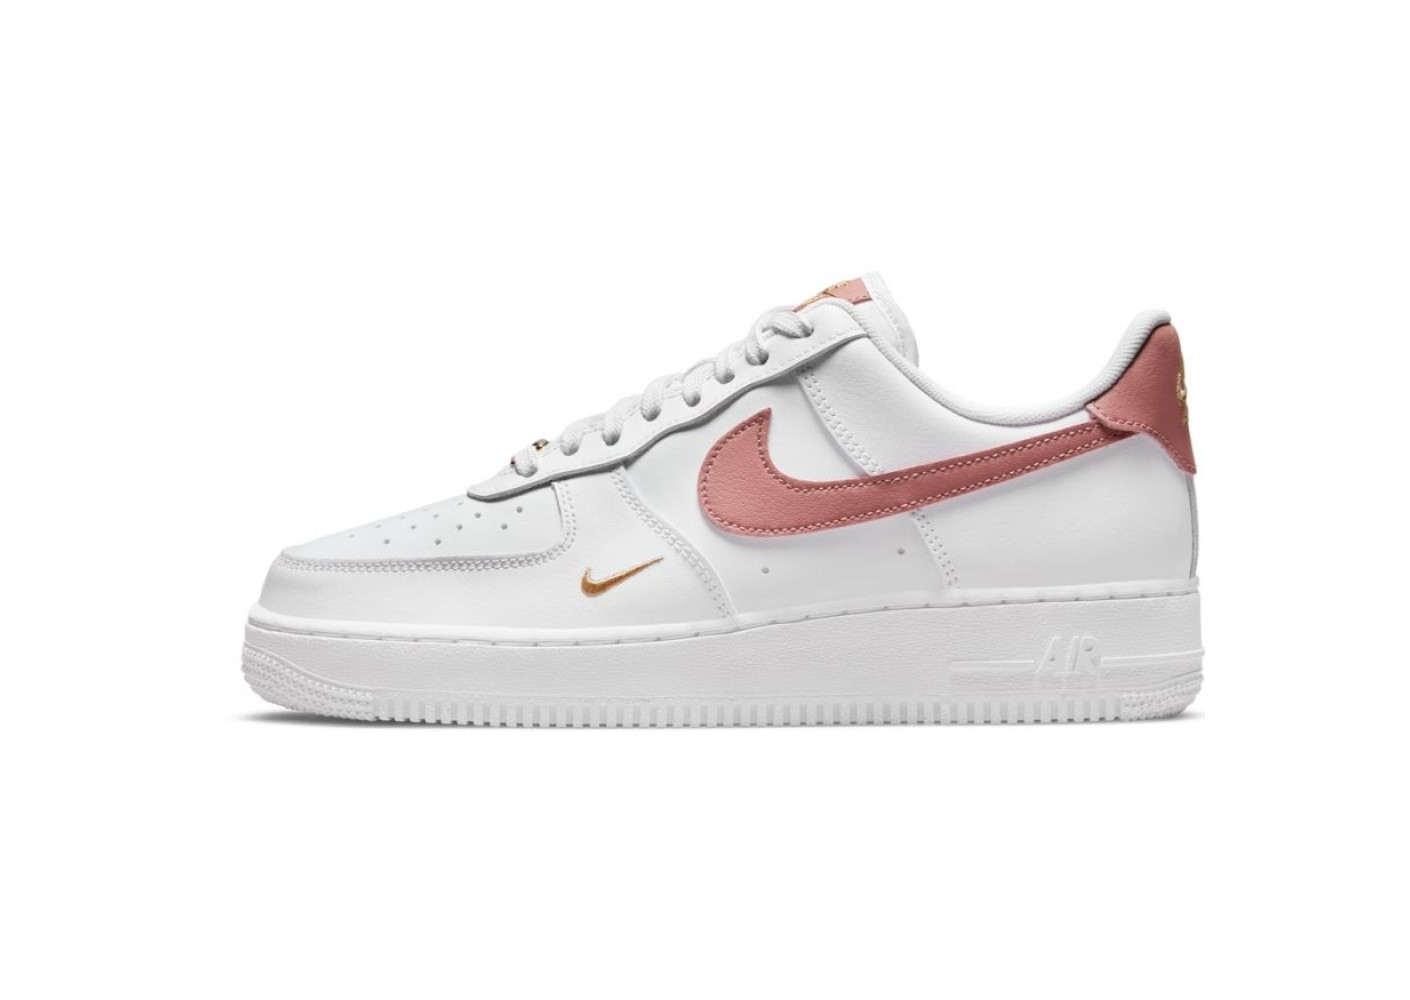 Nike Nike Air Force 1 07 ESS Blanc et Rose Femme - Chaussures ...